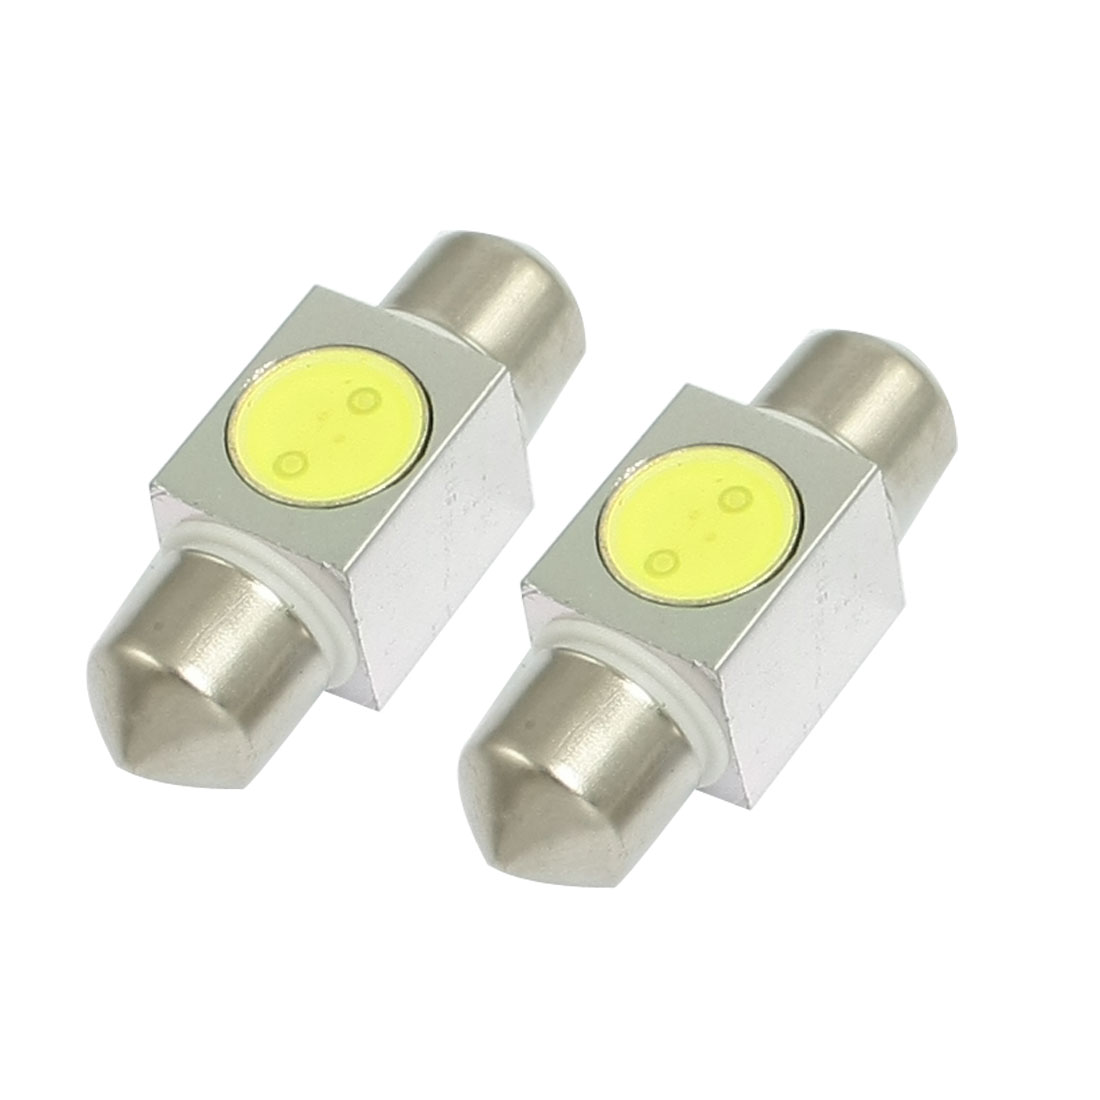 2 Pcs White SMD LED 31mm Interior Festoon Dome Door Light Bulb Lamp 1W internal